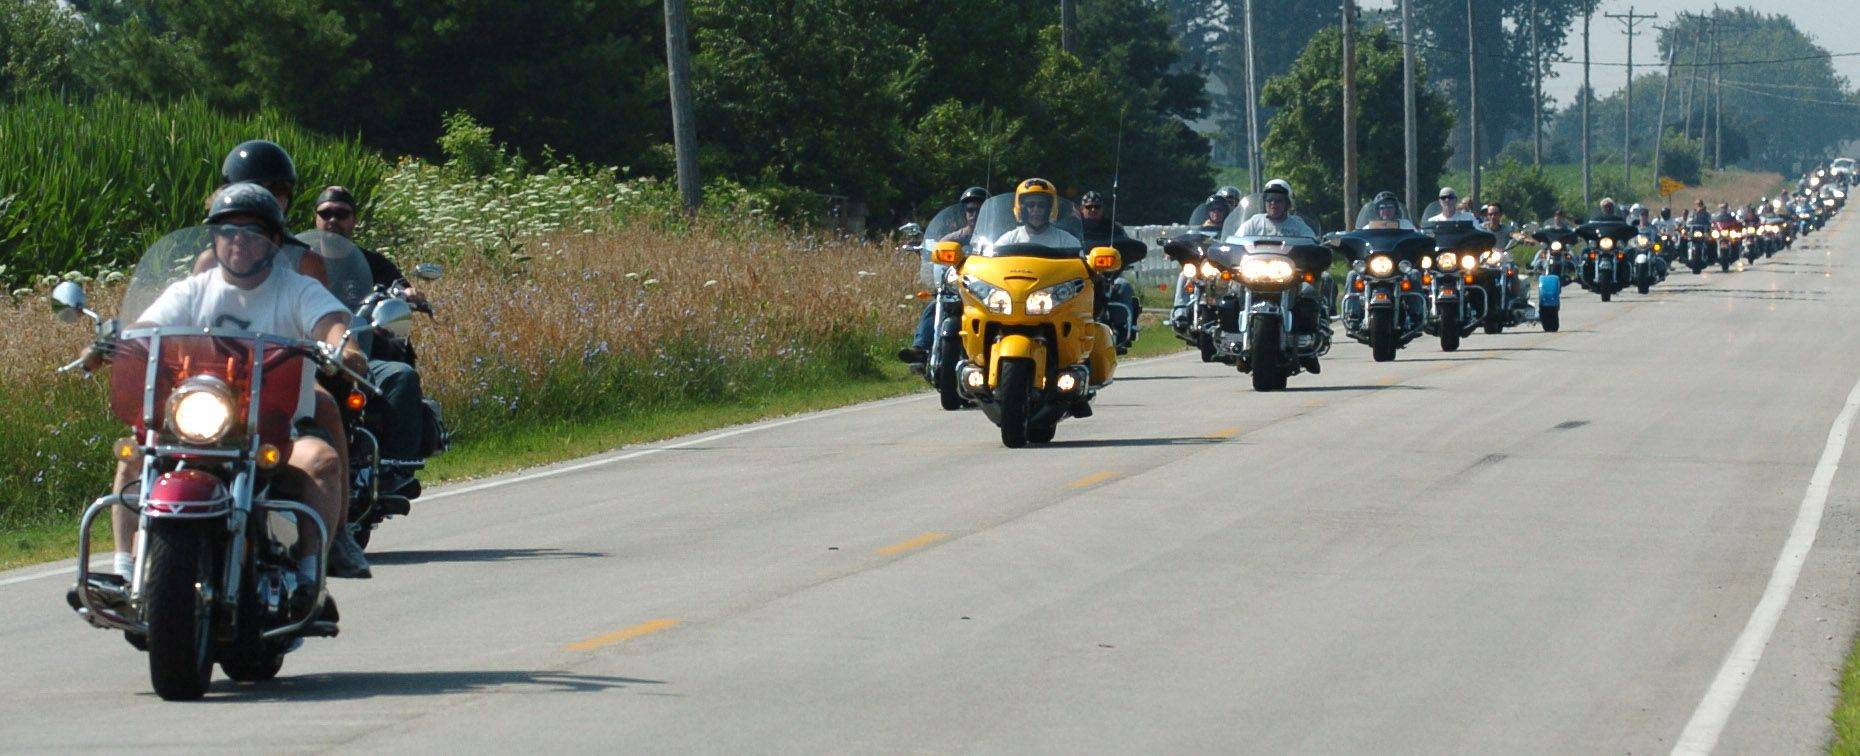 The rumble of motorbikes filled the air in Elgin during the Chicagoland Ride for Kids Sunday, which benefits the Pediatric Brain Tumor Foundation.